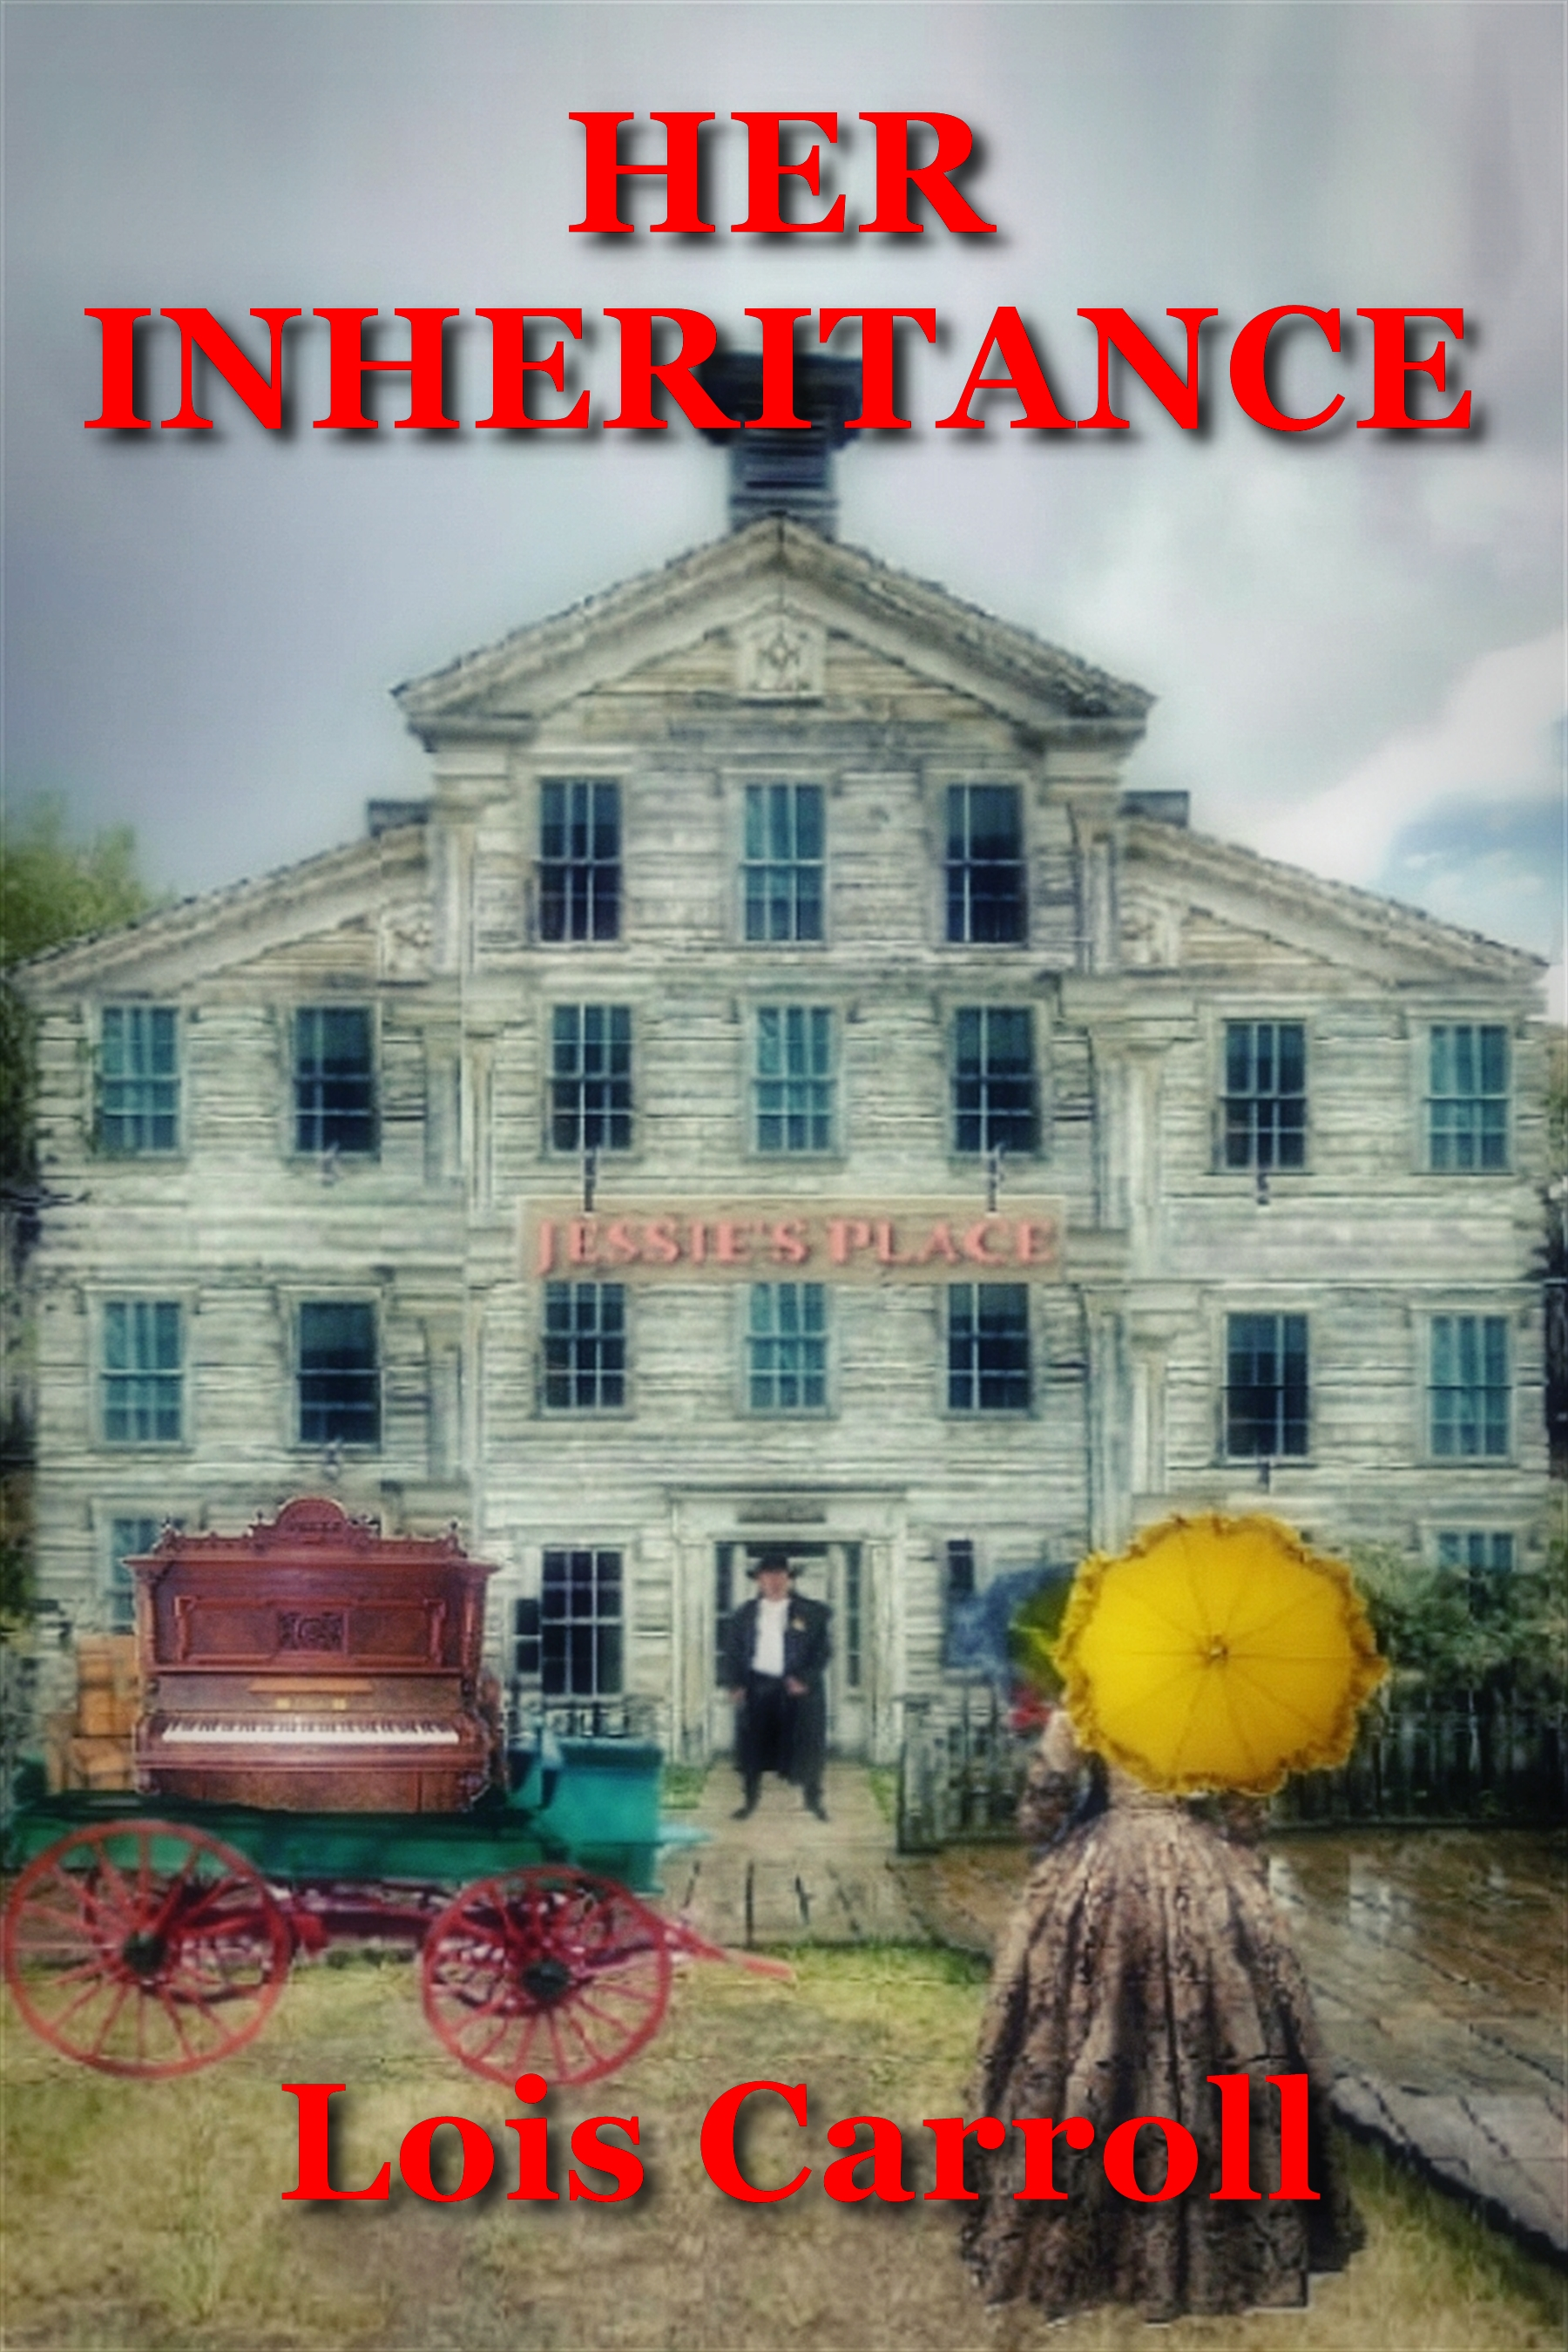 Her Inheritance by Lois Carroll